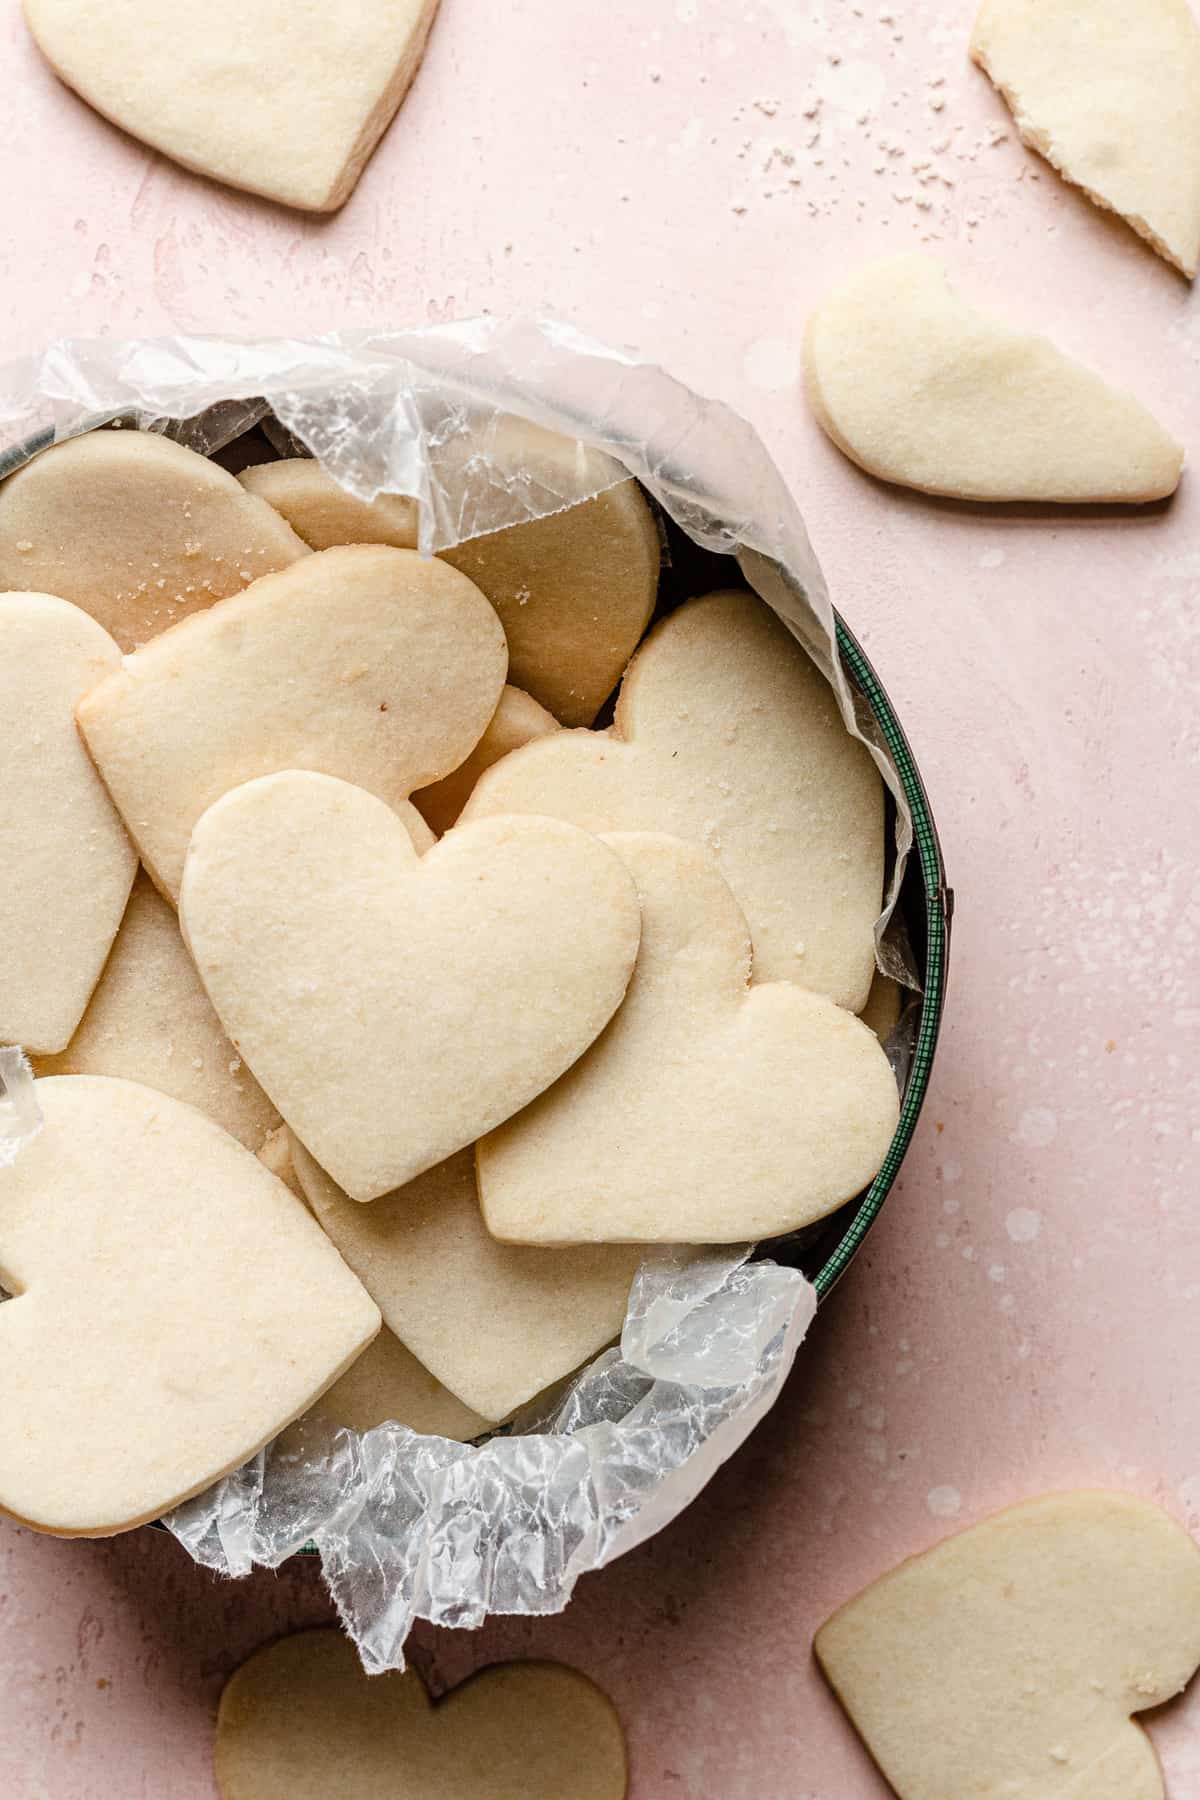 Shortbread cookies with sharp edges